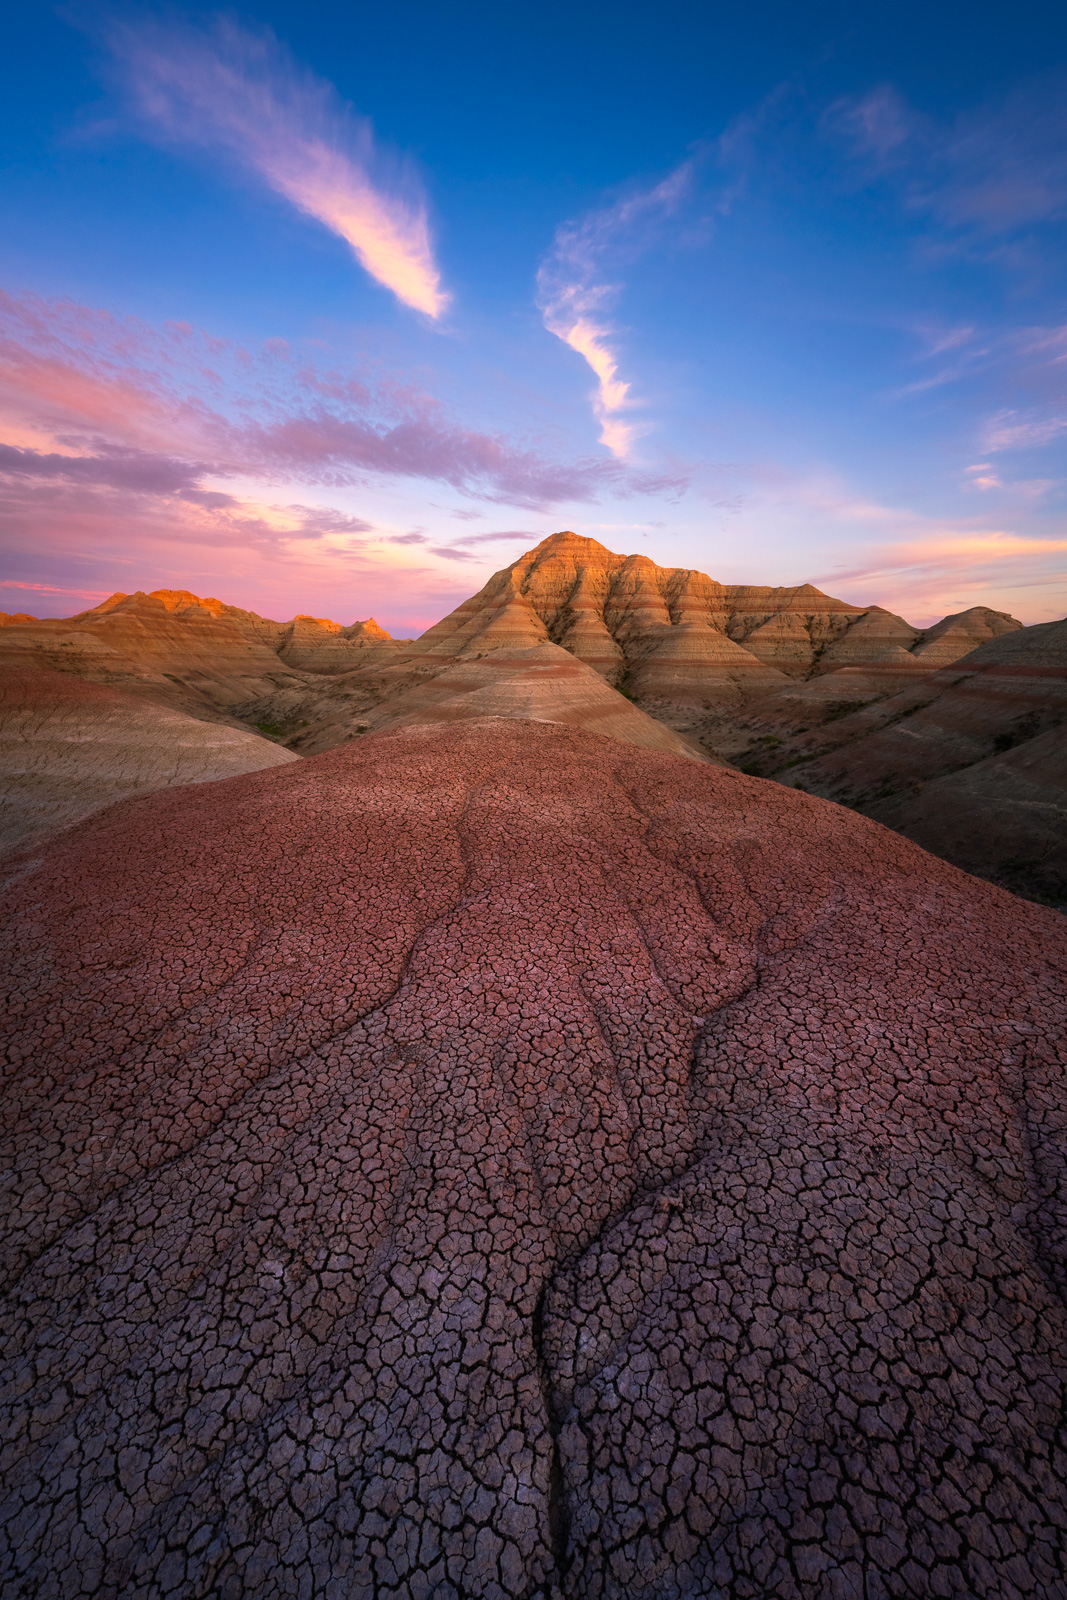 Badland pinnacles at sunset from deep in the backcountry.